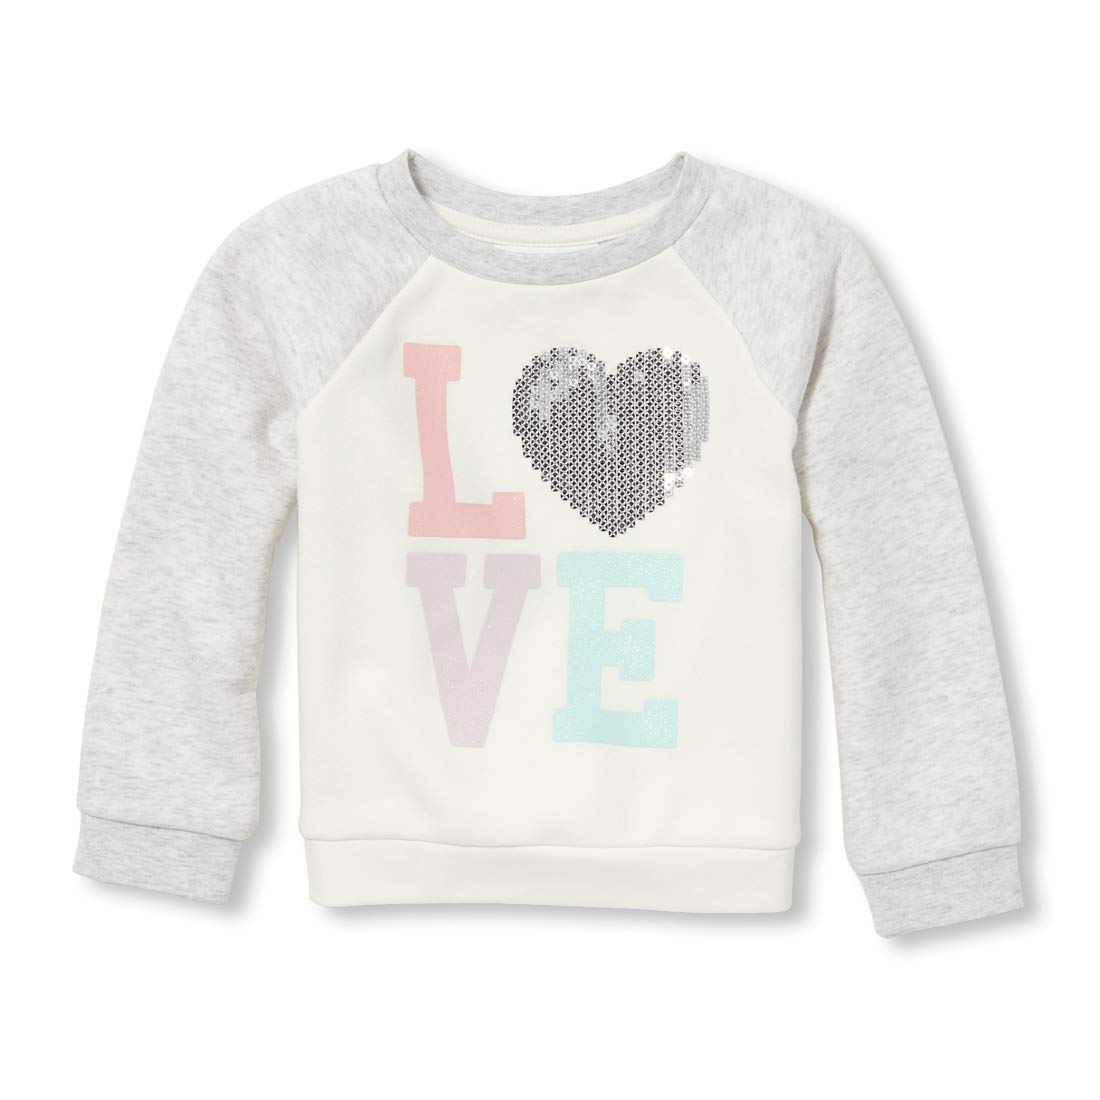 The Childrens Place Toddler Girls Graphic Fleece